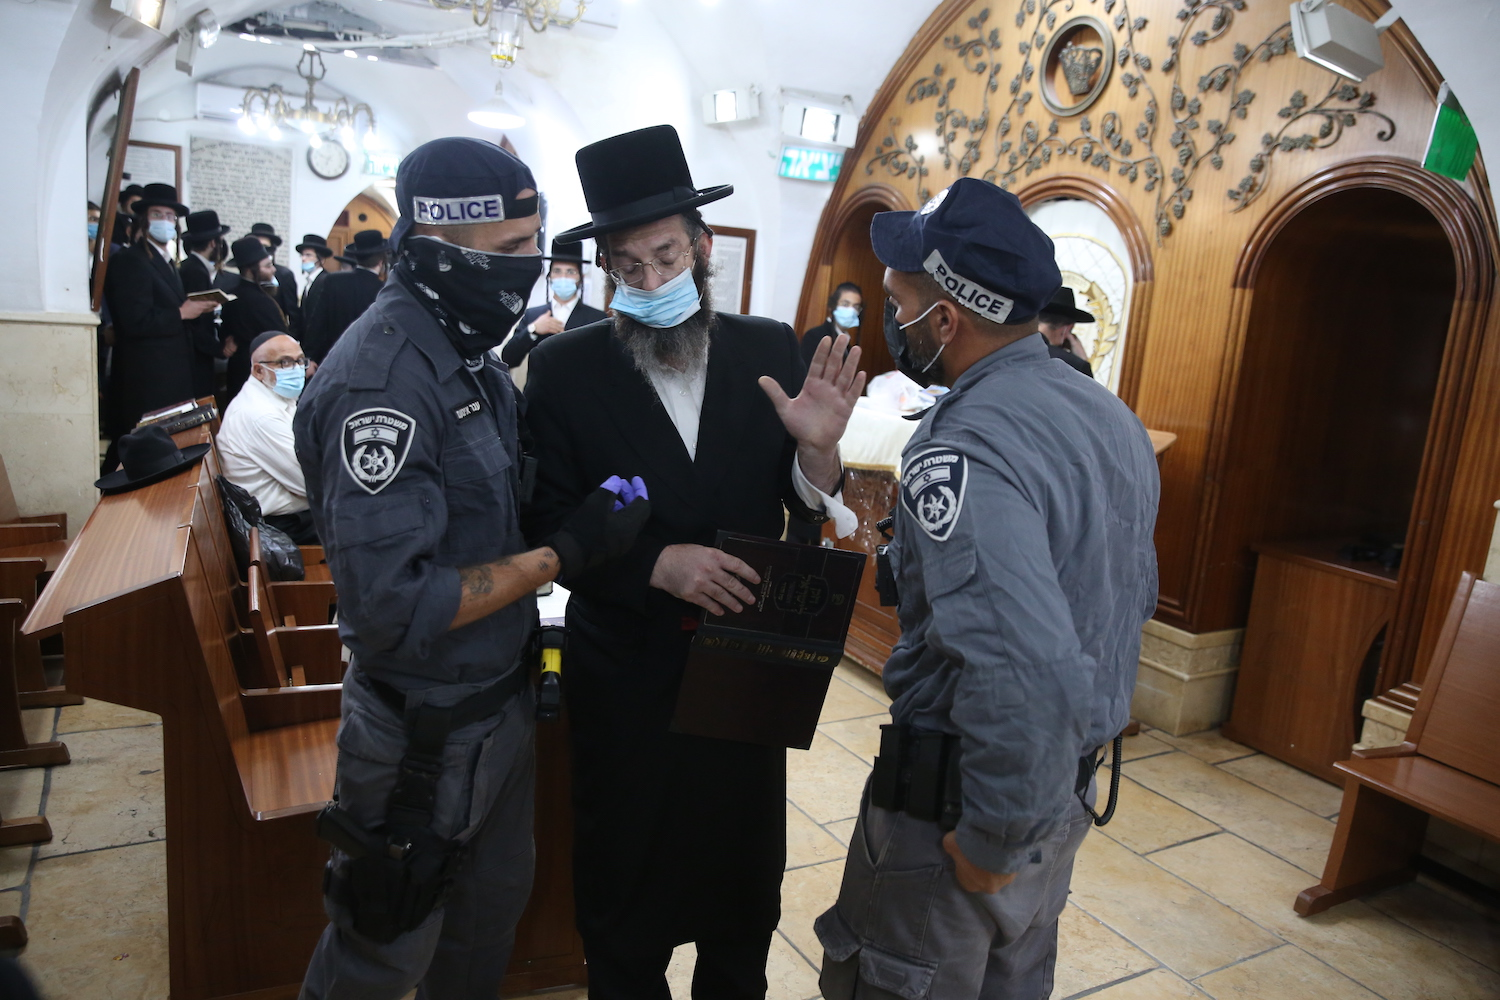 Police scuffle with ultra-orthodox Jewish worshippers at a tomb in the Israeli town of Meron, after prayer services had been largely restricted during a nationwide lockdown, September 24, 2020. (David Cohen/Flash90)